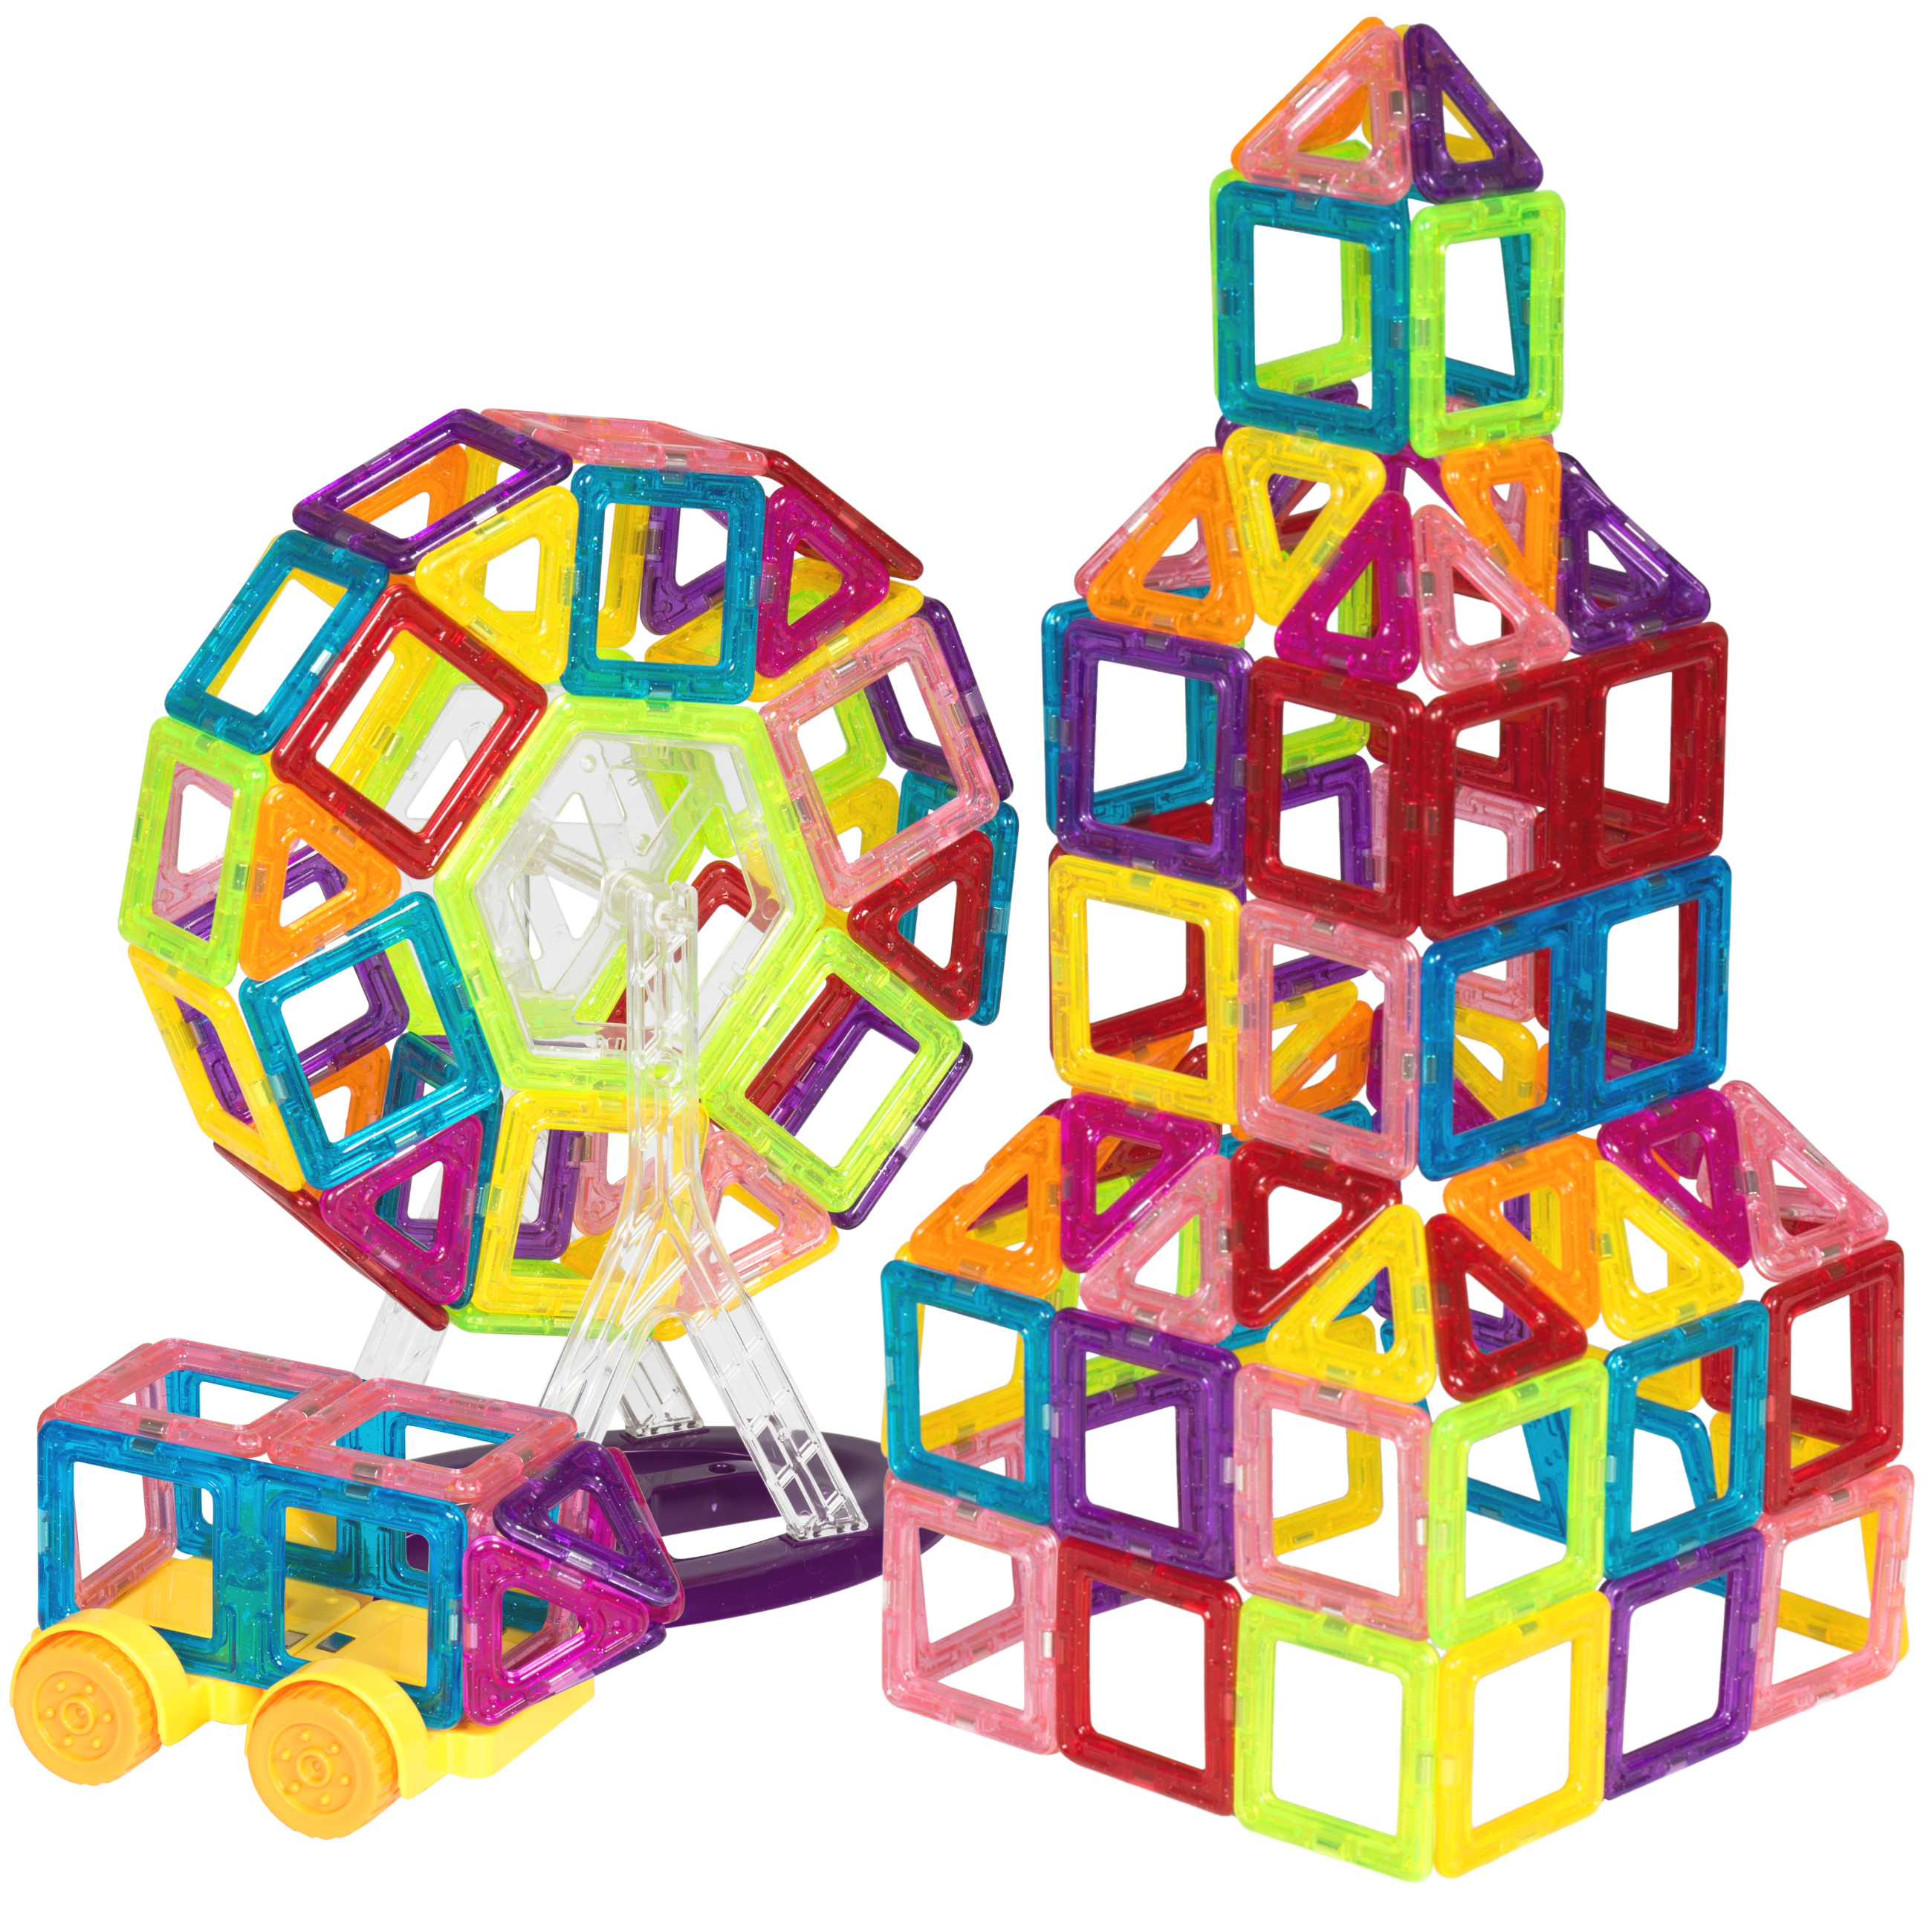 Best Choice Products Kids 158-Piece Clear Multi Colors Mini Magnetic Blocks Tiles Educational STEM Toy Building Set